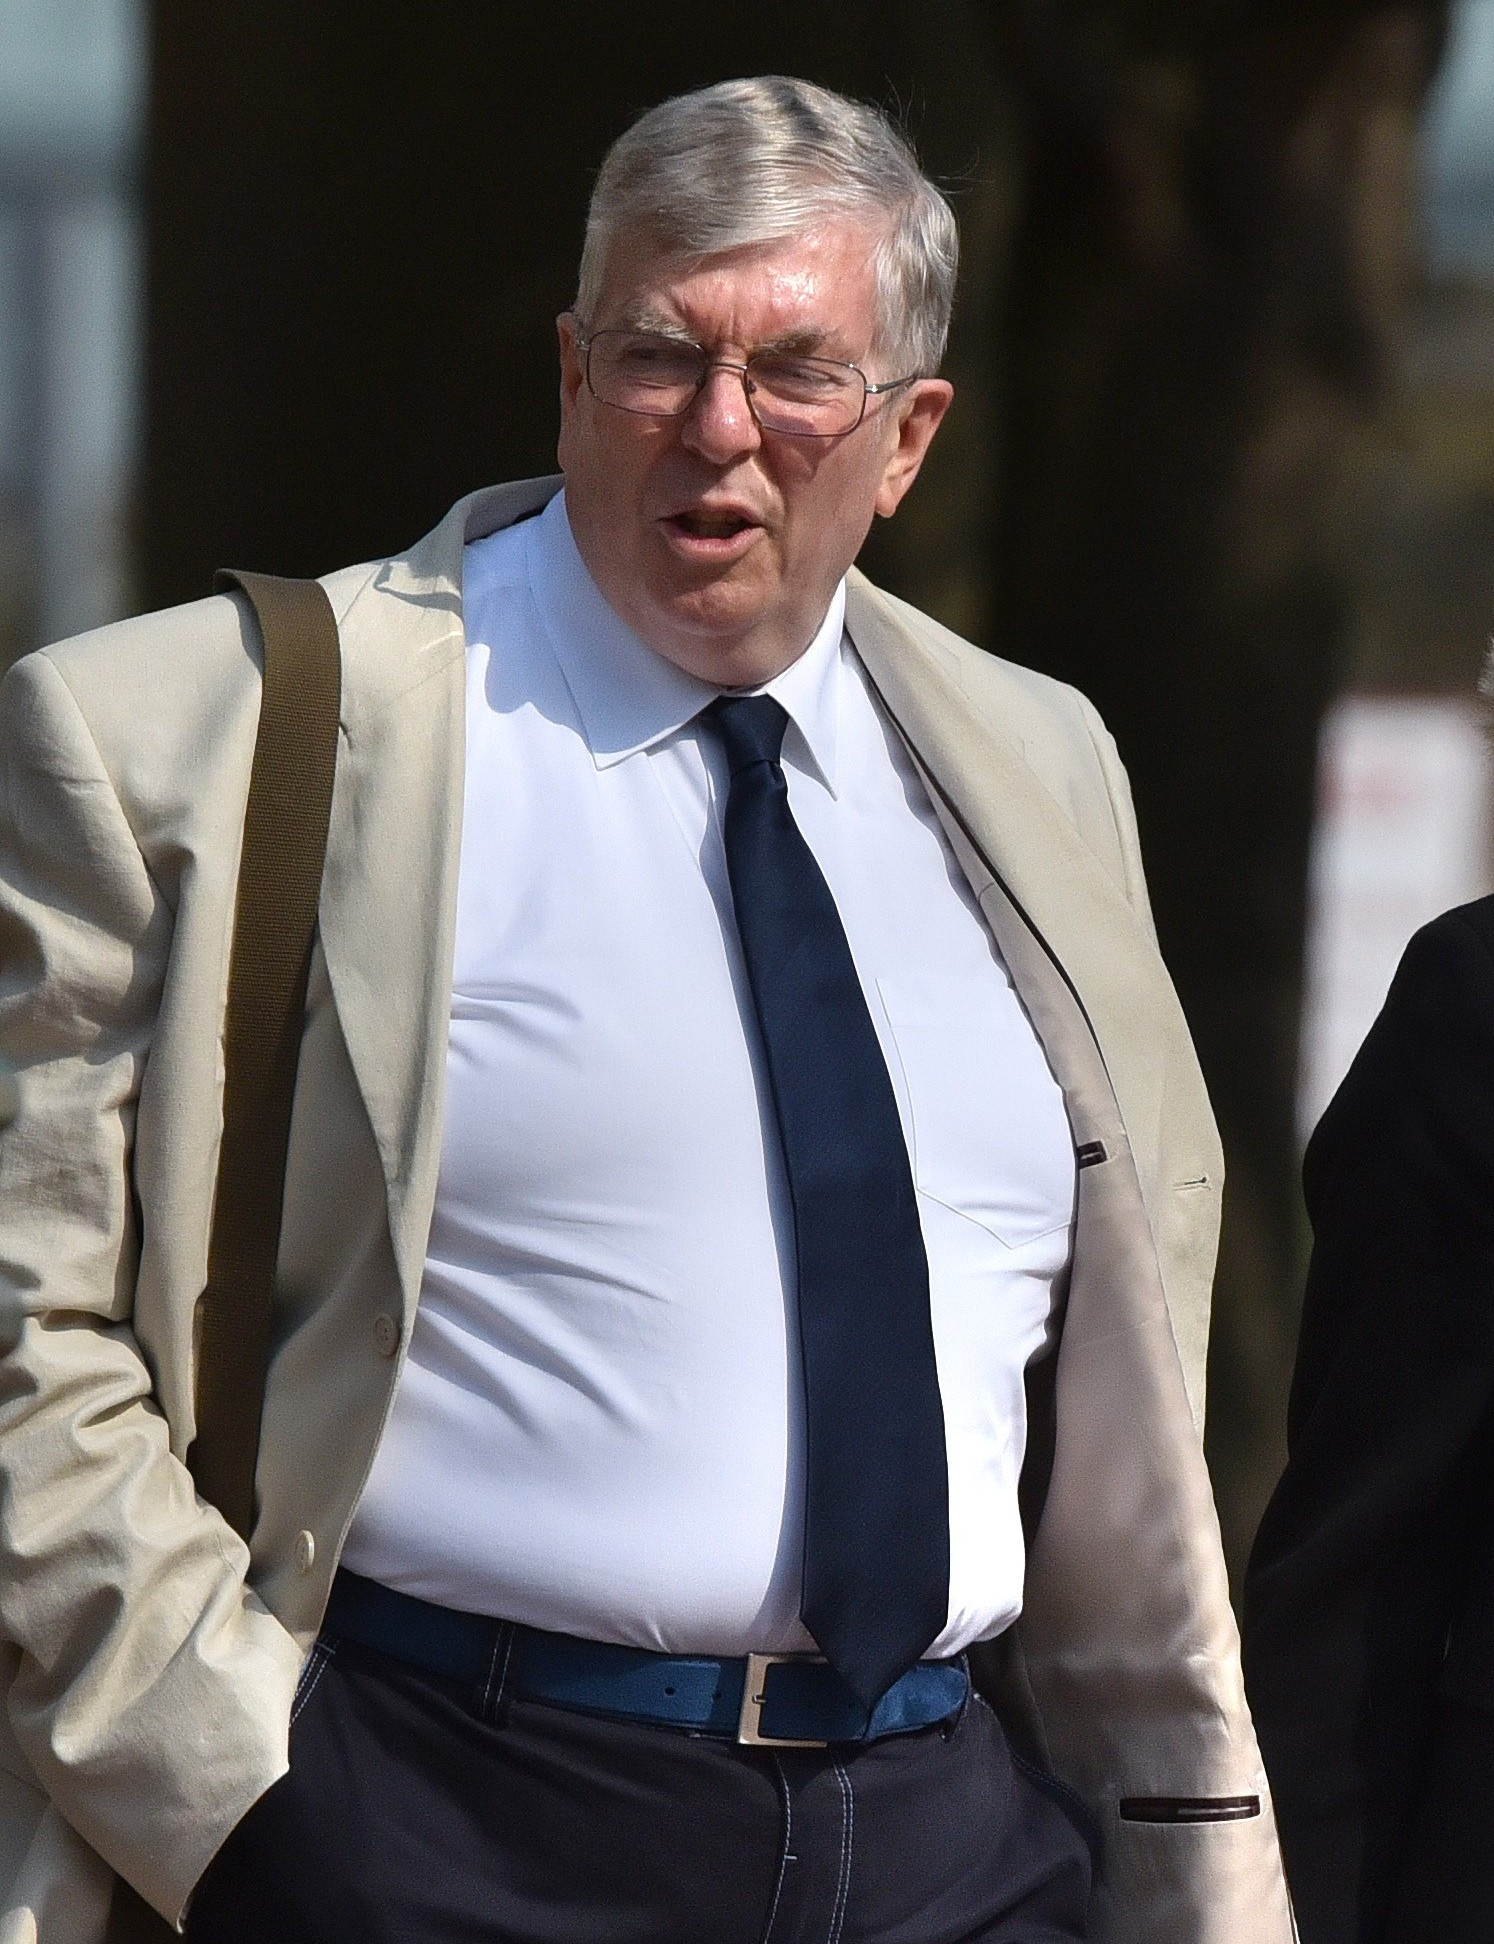 Graham Doyle, 69, who is on trial at Bradford Crown Court